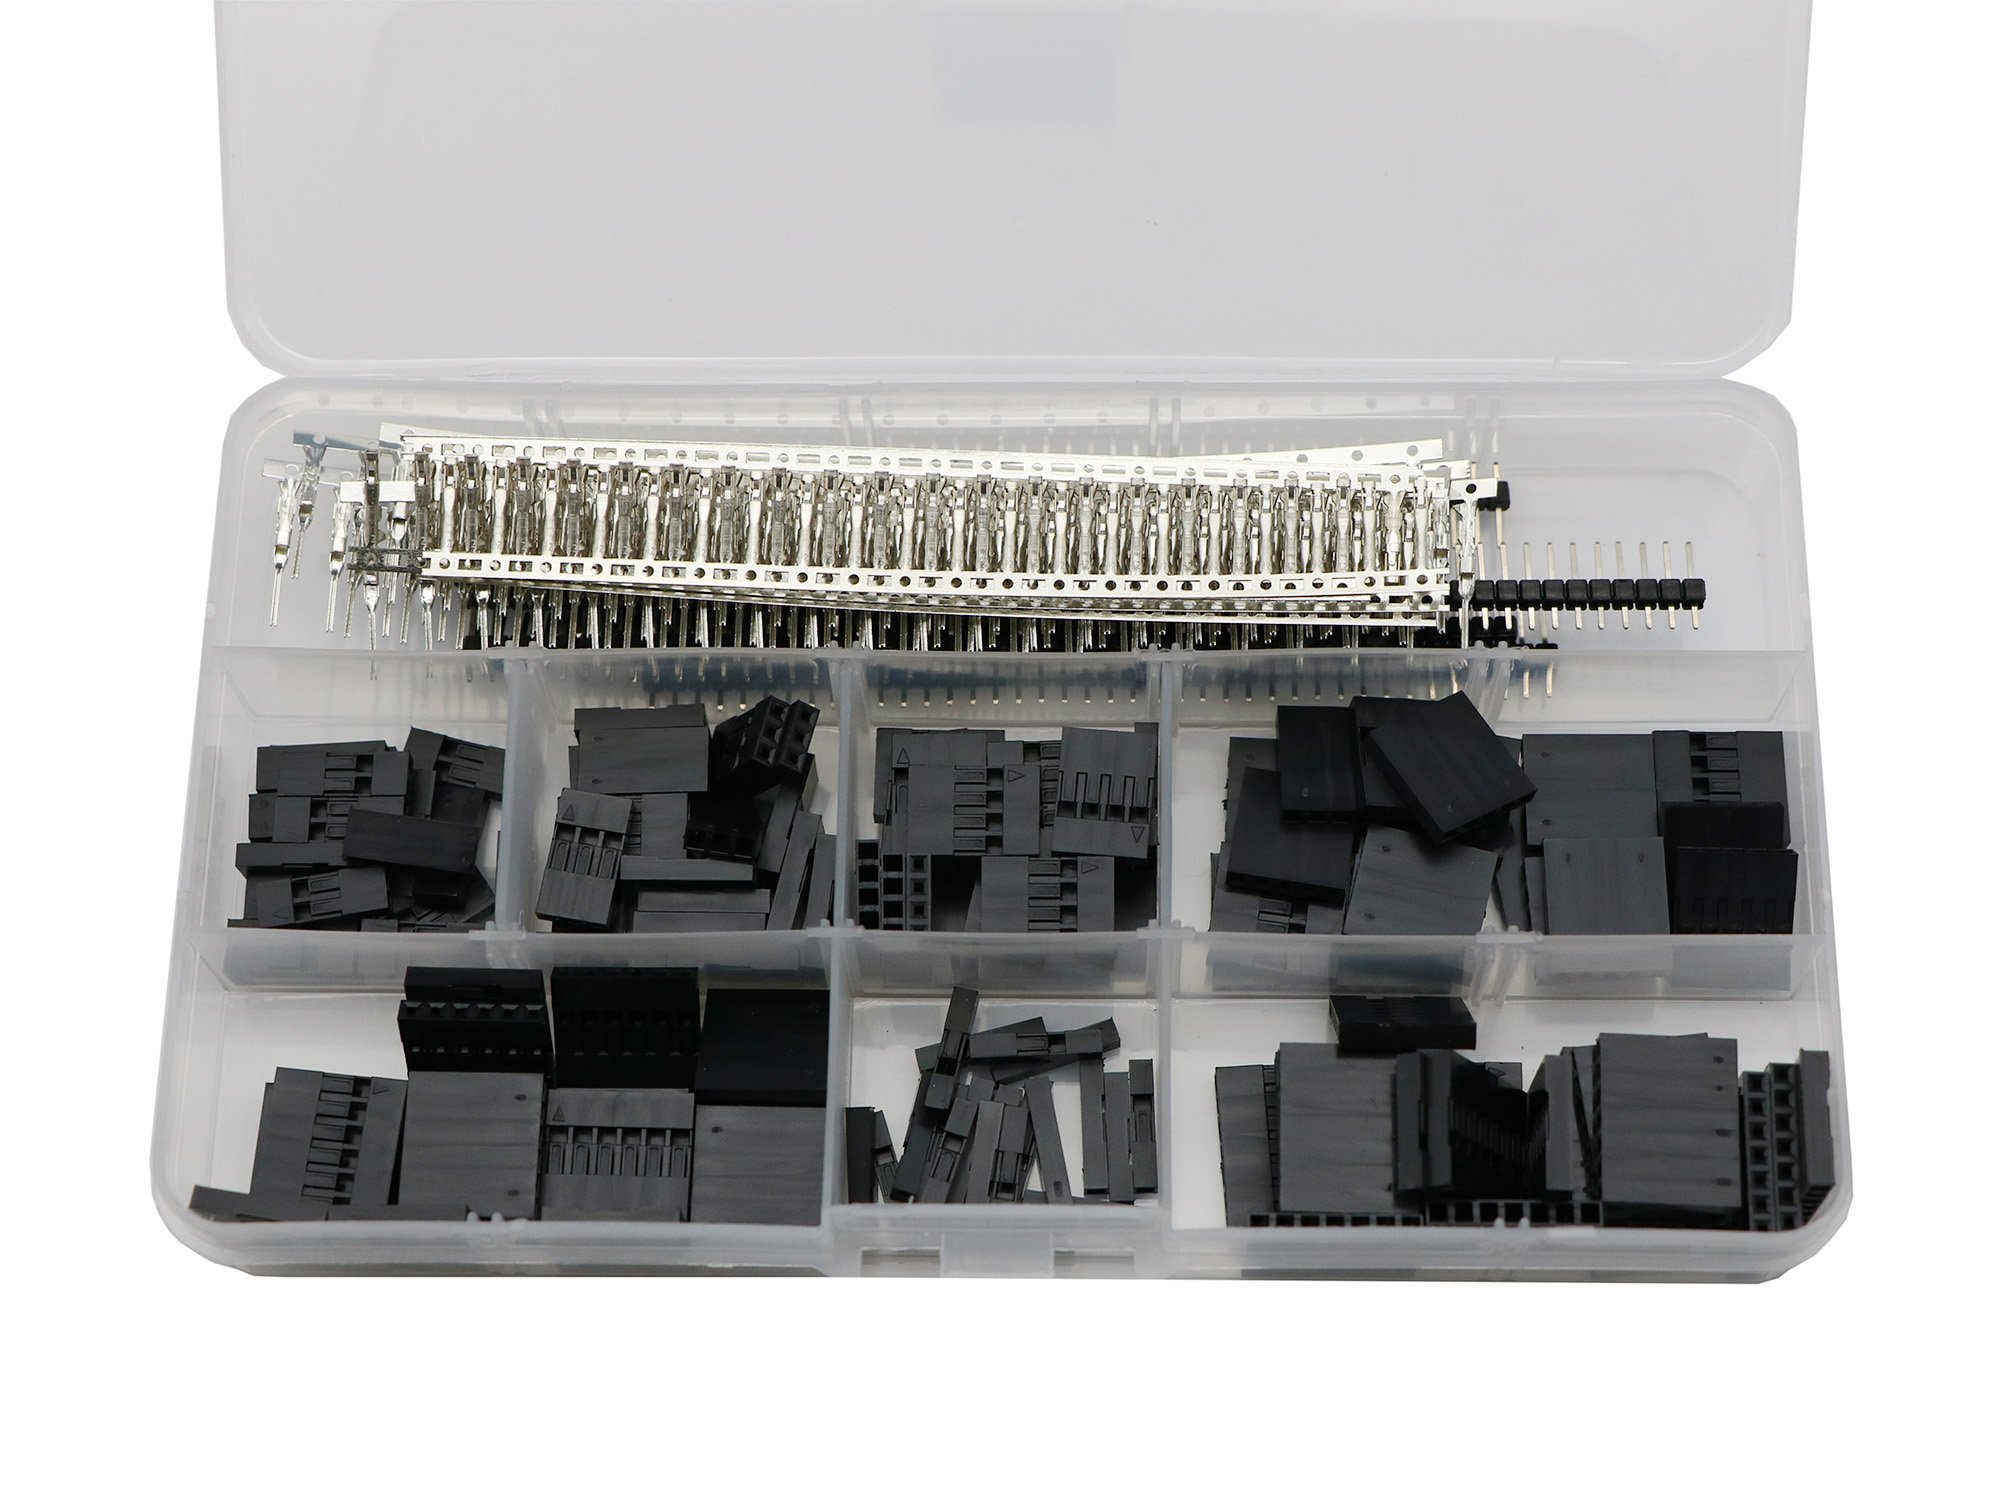 430 pcs 40 Pin 2.54mm Pitch Single Row Pin Headers,Dupont Connector Housing Female and Dupont Male Female Pin Connector Kit